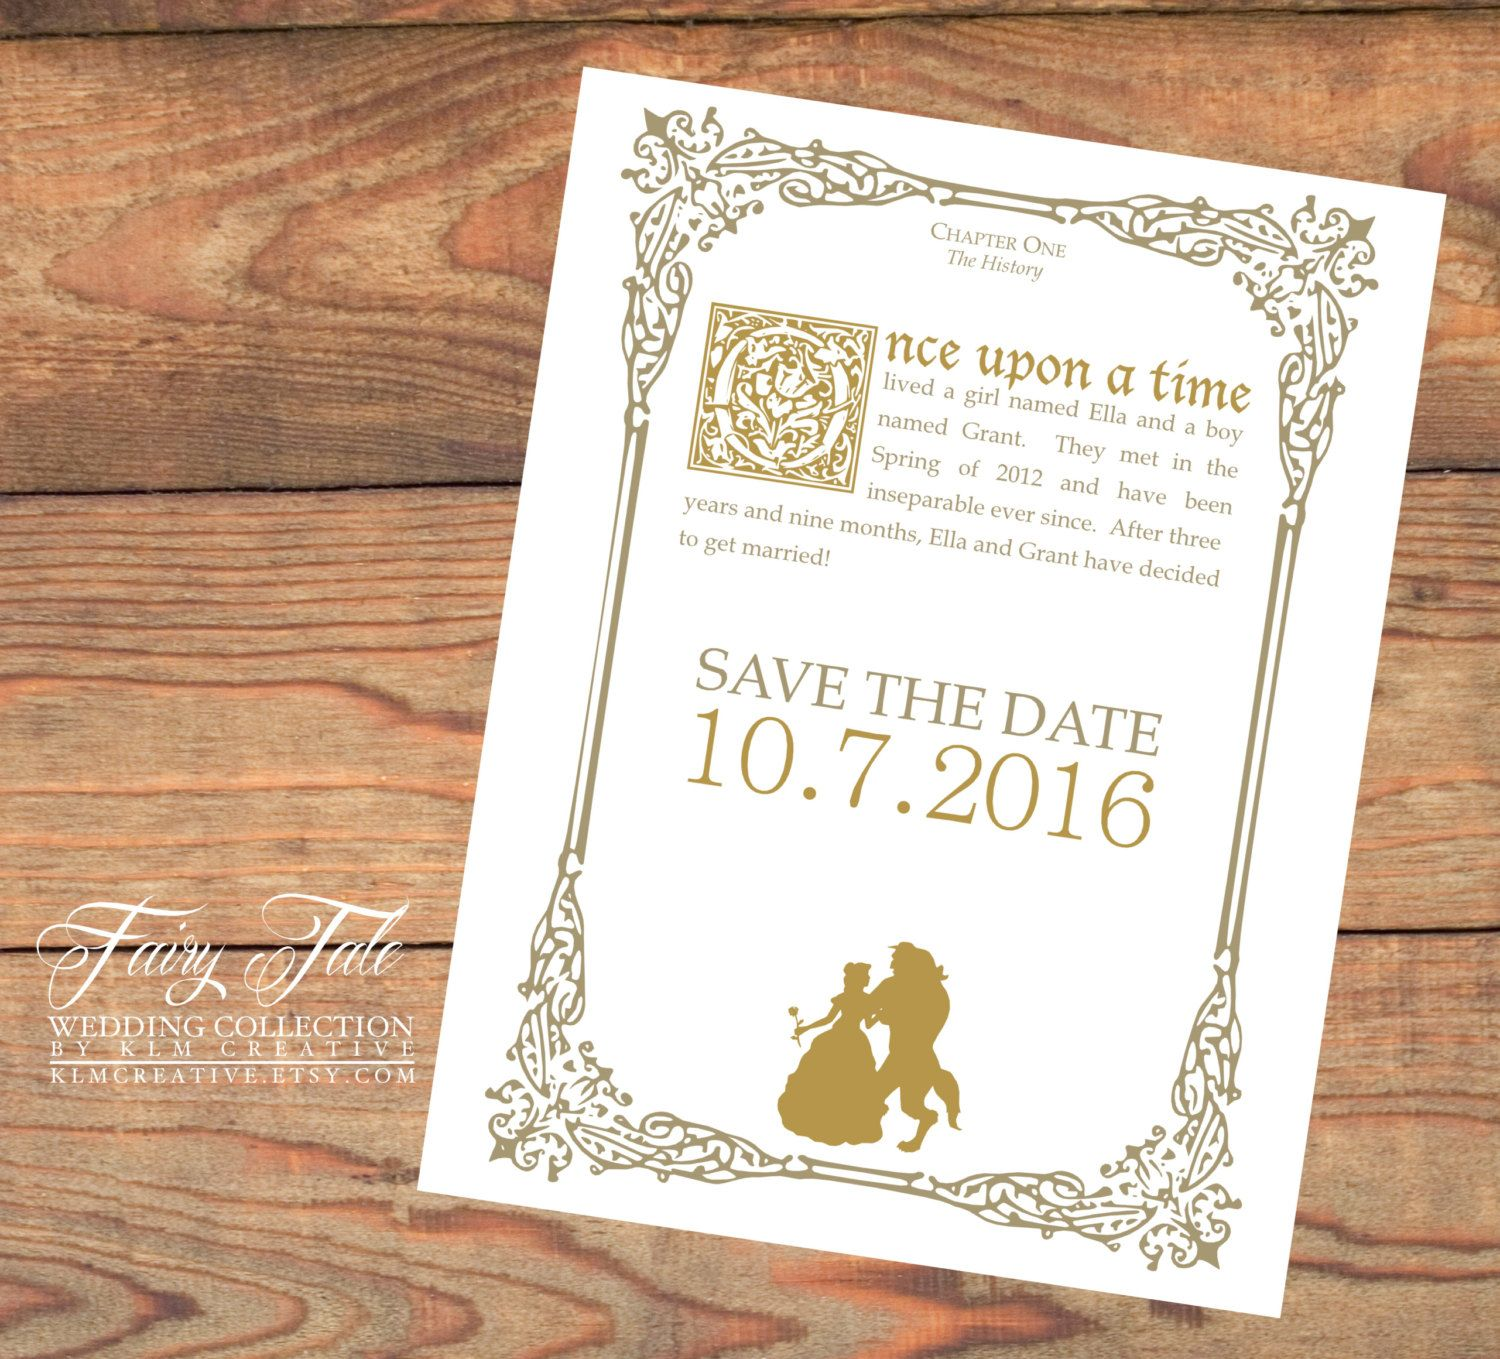 fairy tale wedding collection beauty and the beast elegant storybook save the date postcard by - Beauty And The Beast Wedding Invitations